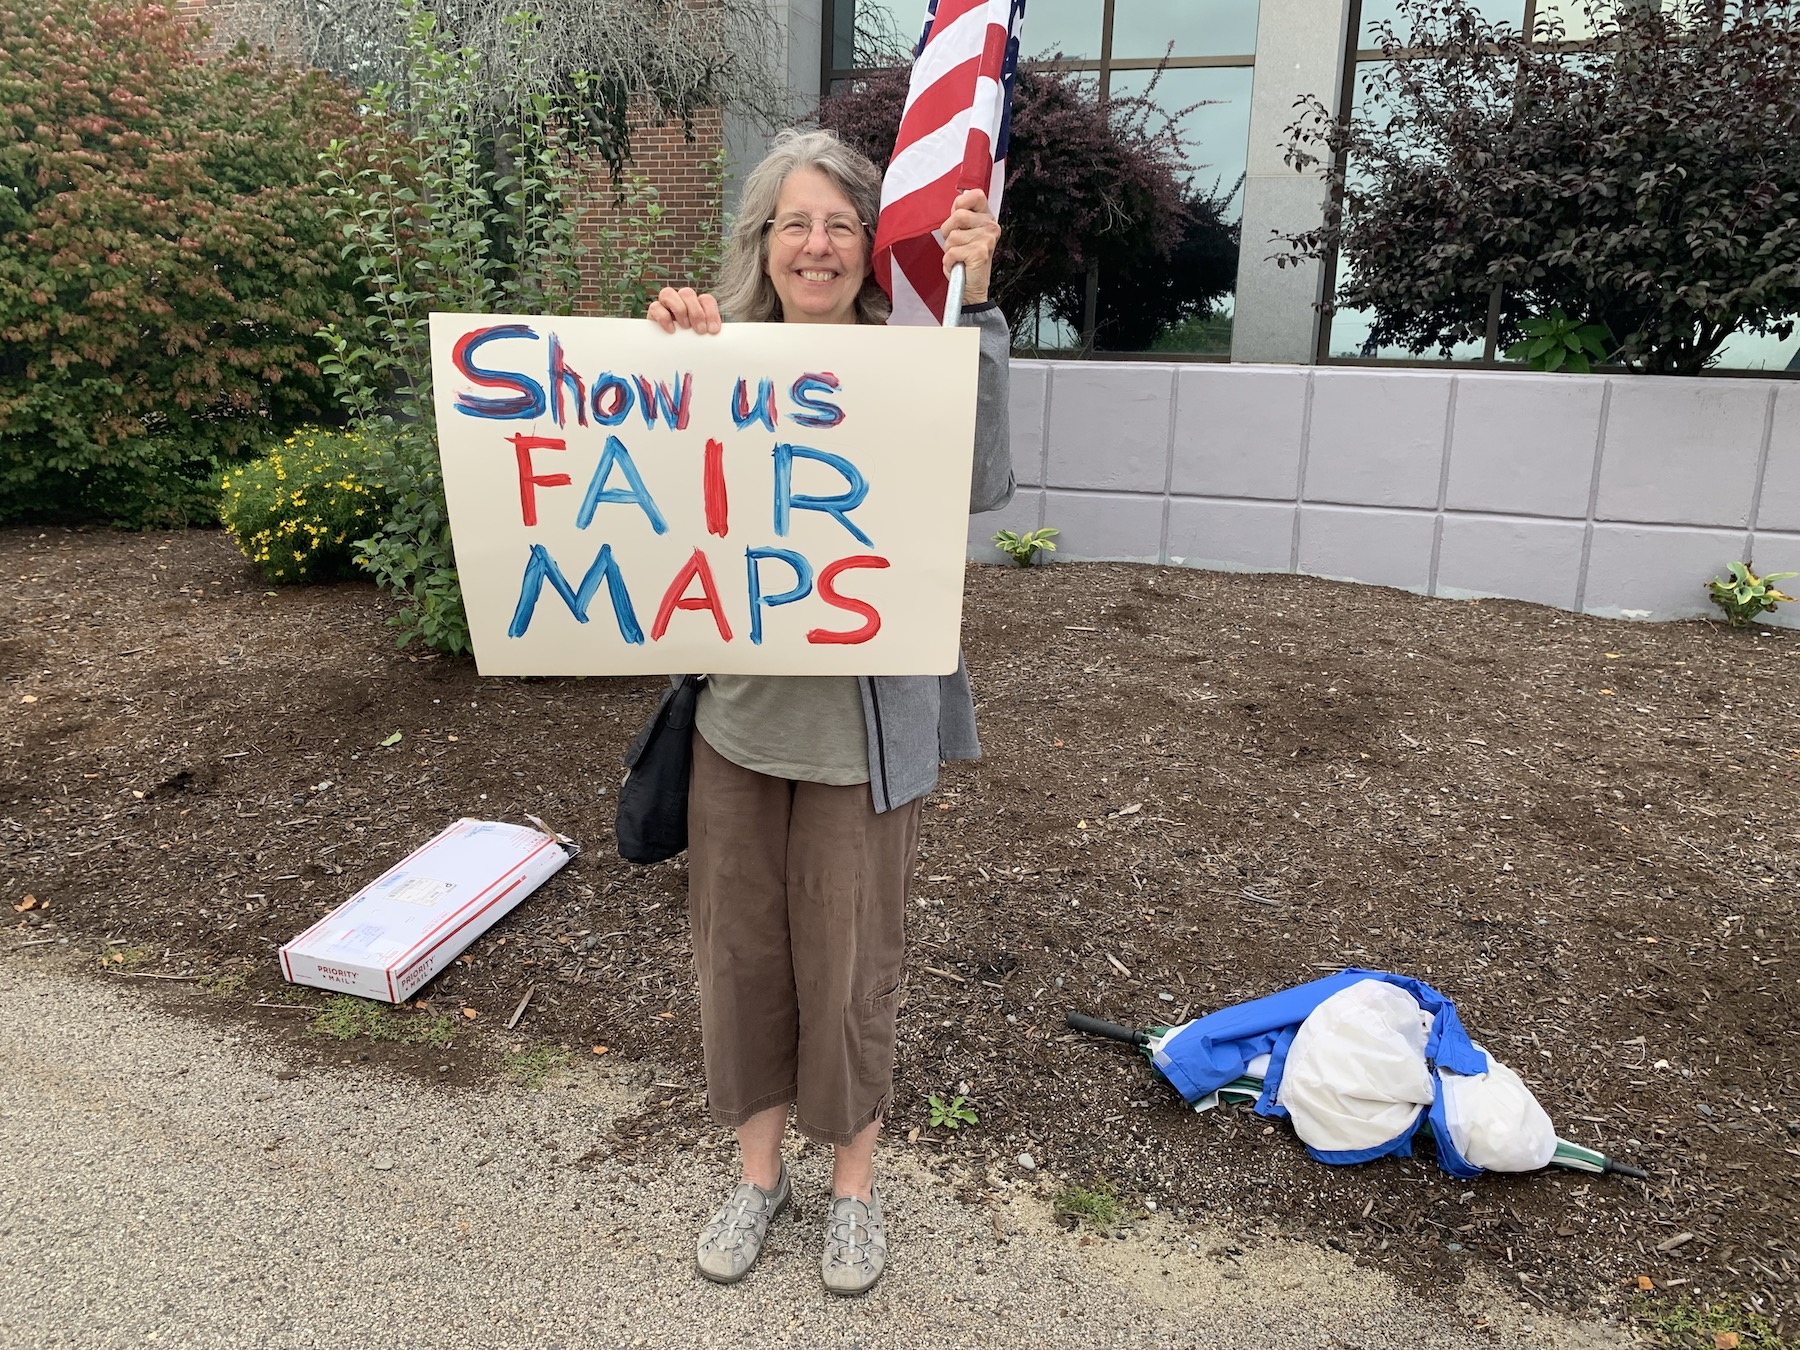 With redistricting underway, citizens raise their voices about lack of representation